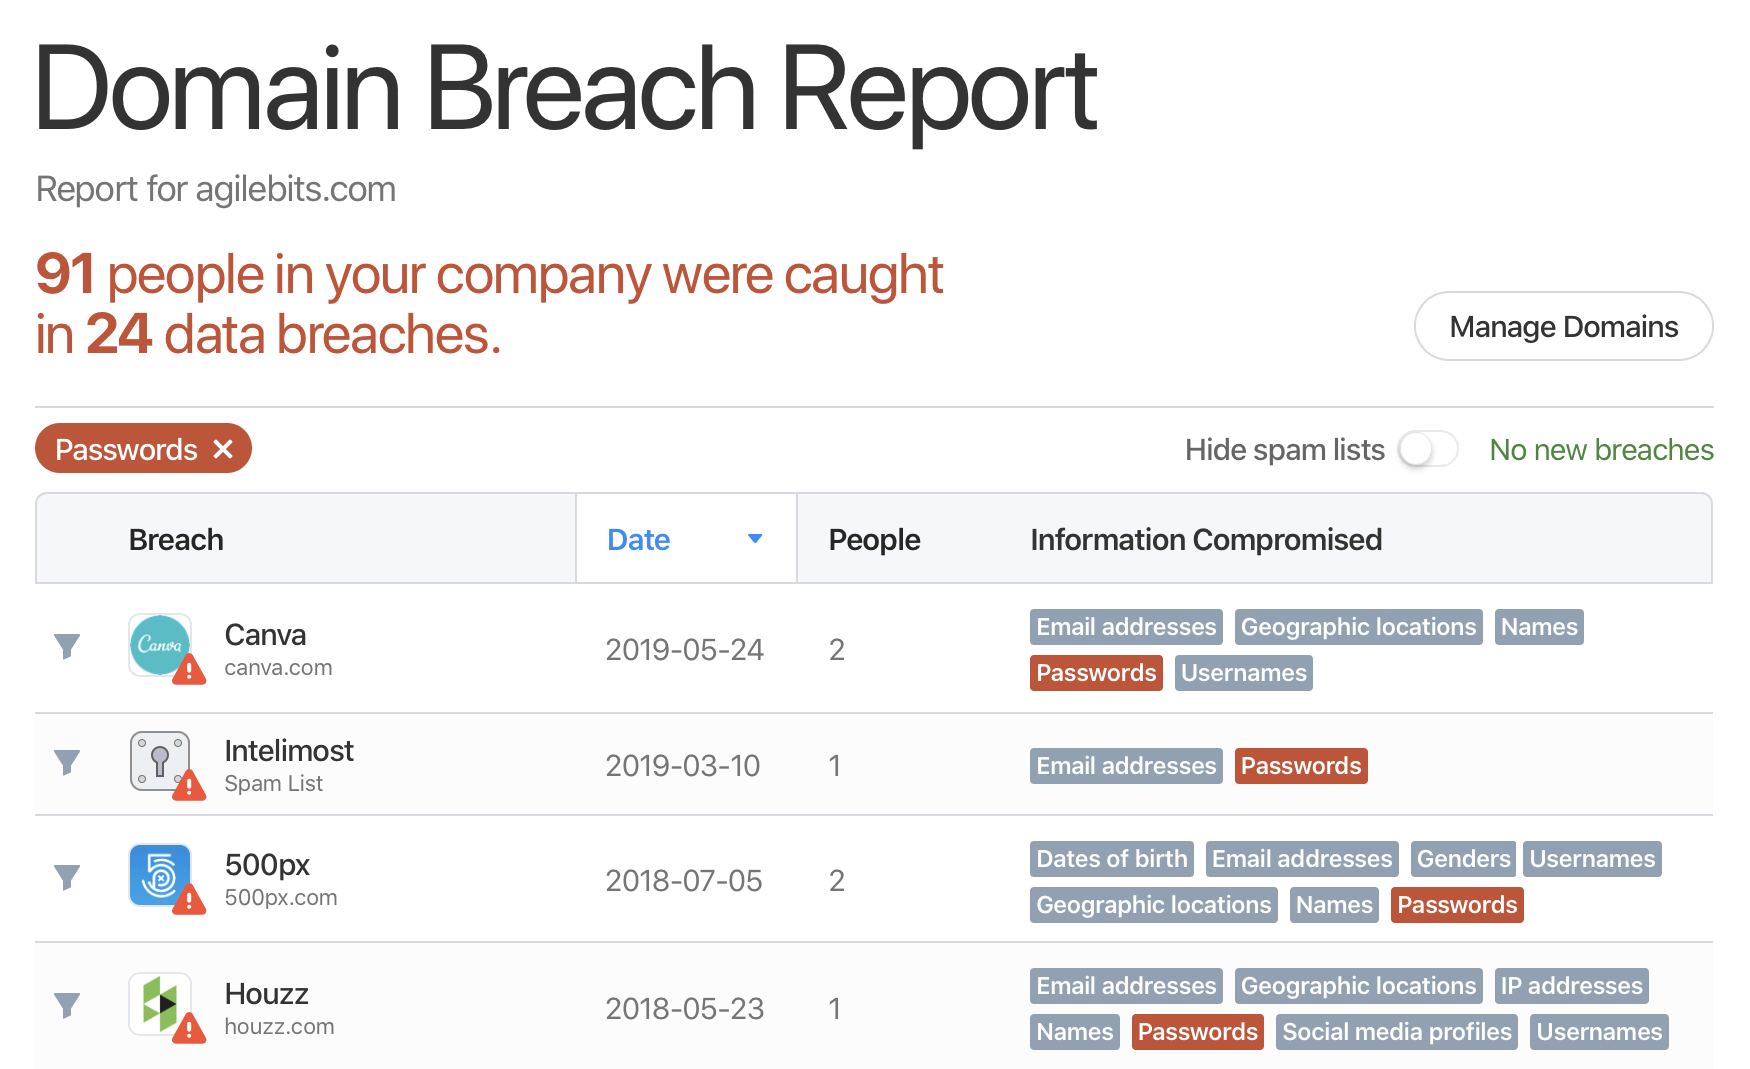 A domain breach report, showing the number of people caught in data breaches, a list of breaches, and the information compromised.